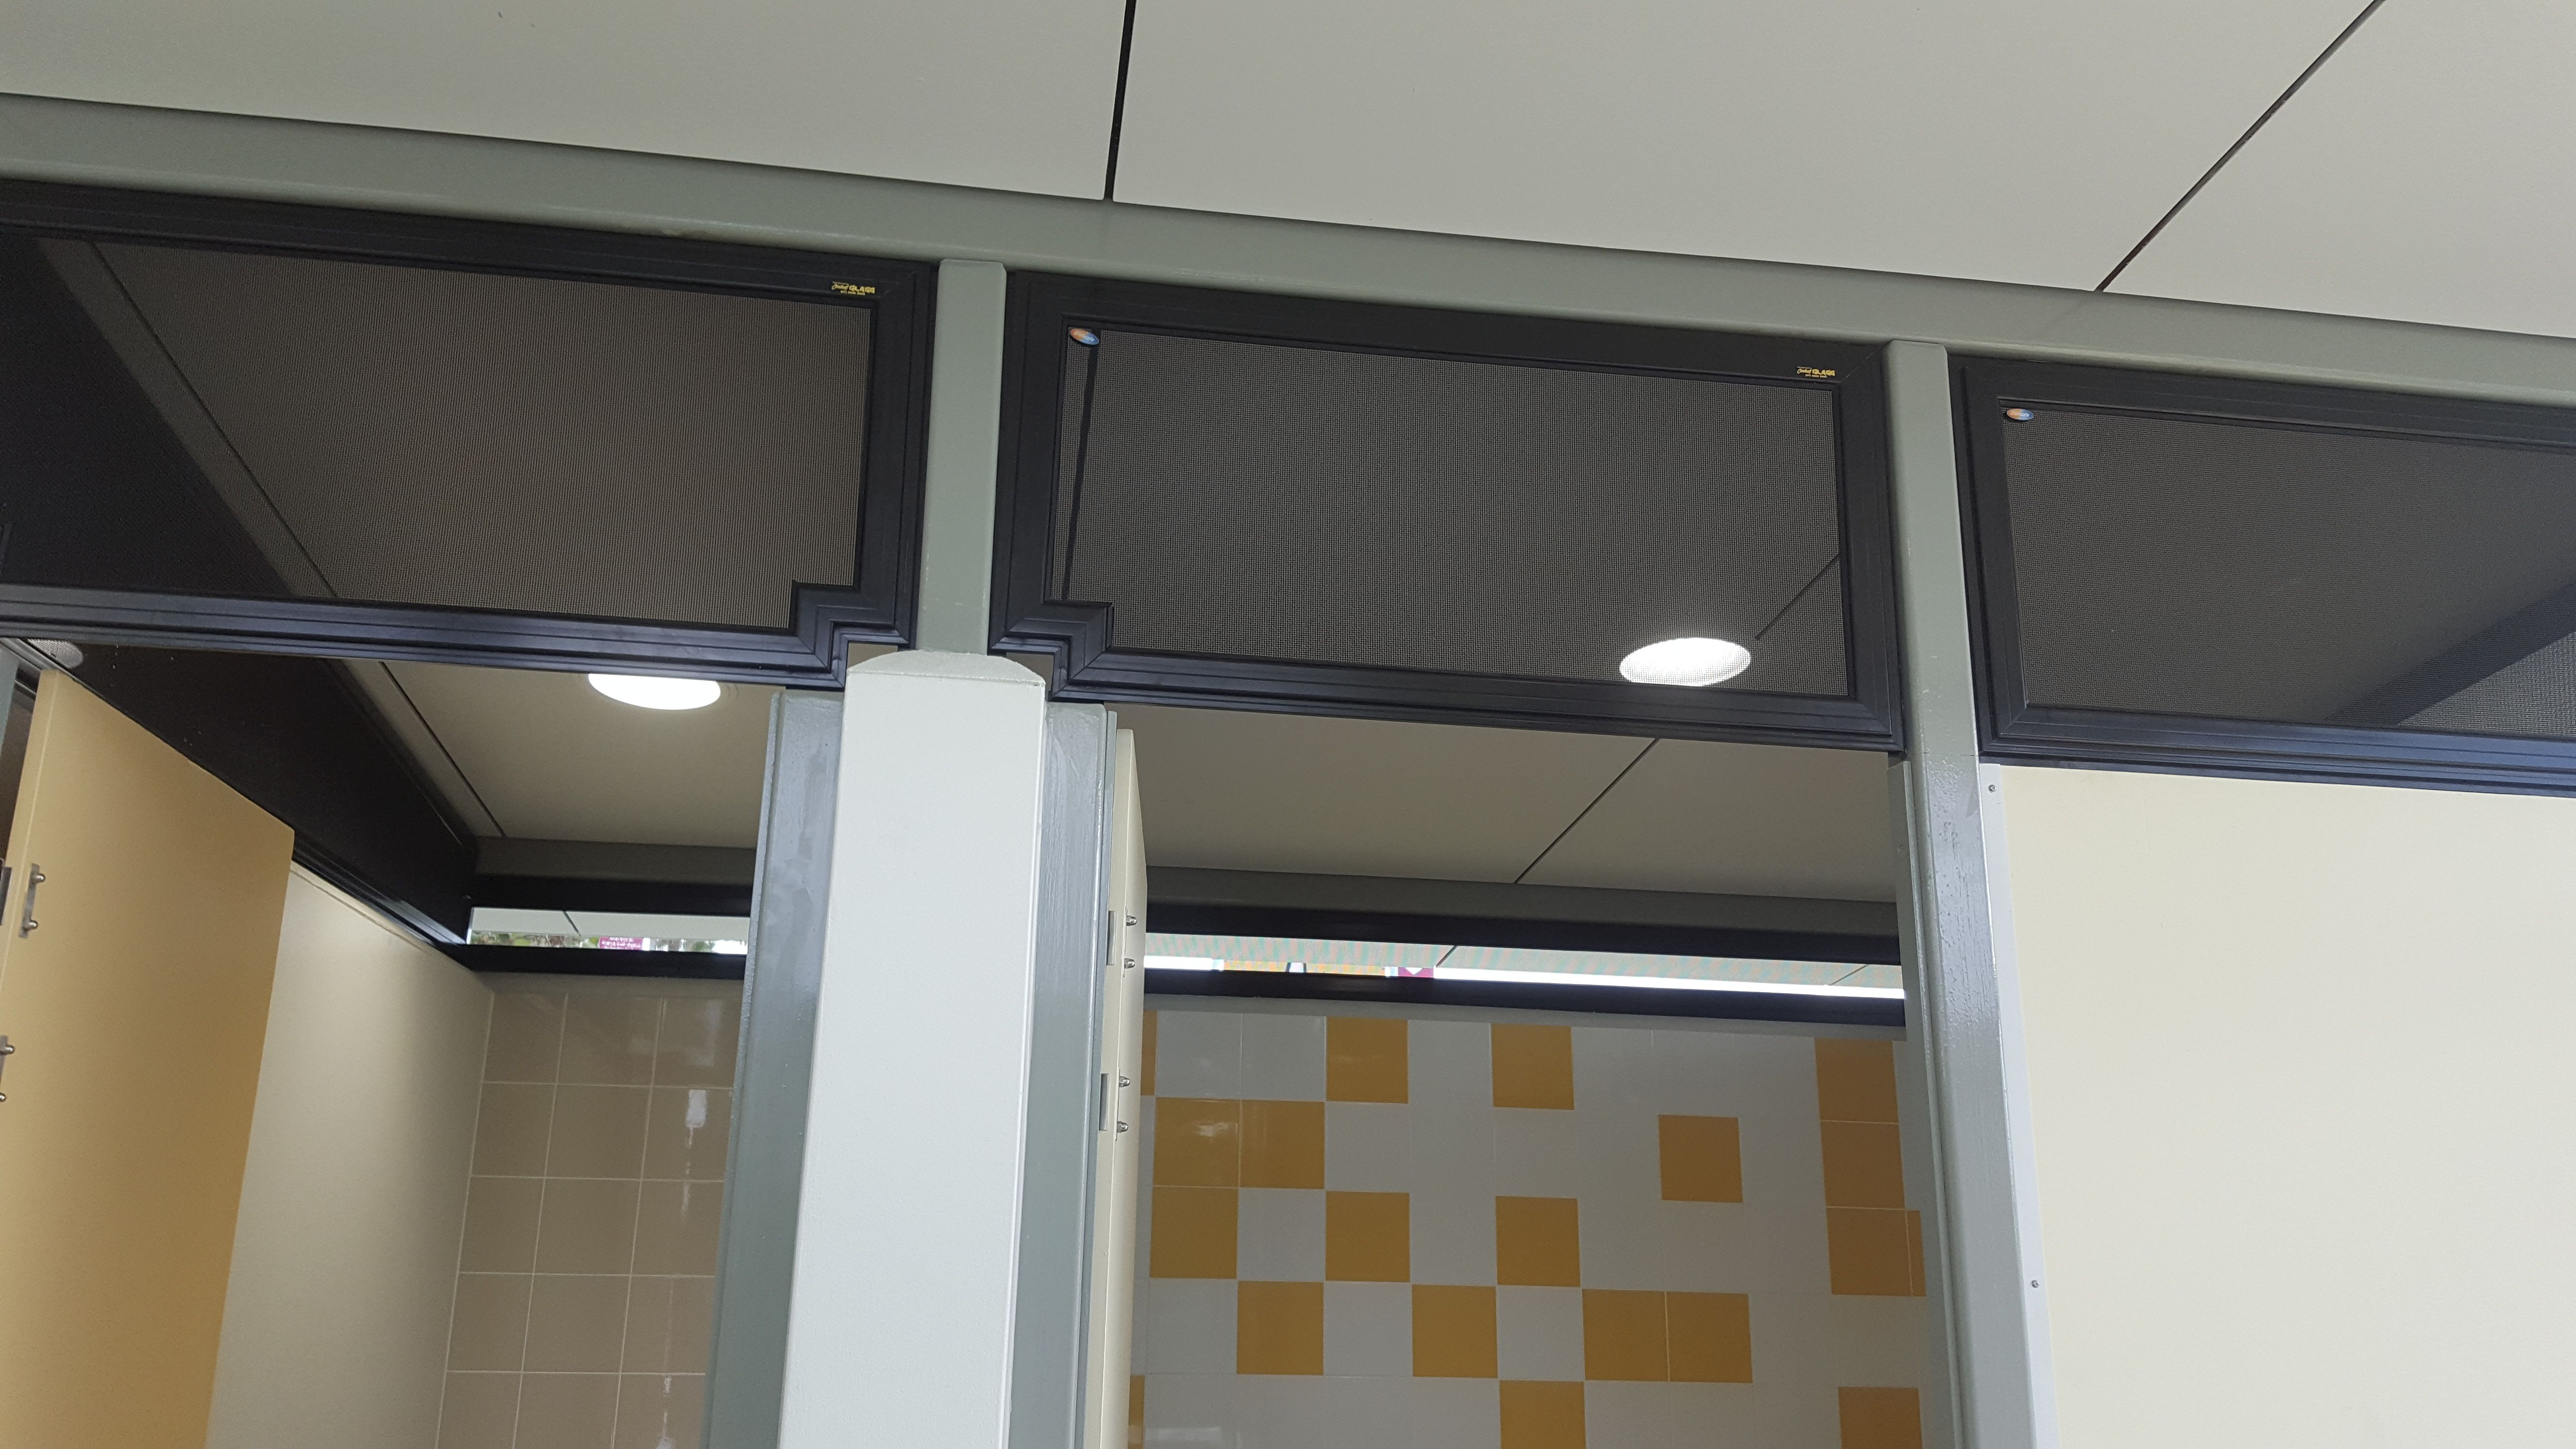 Crimsafe Is Much More Than Just A Security Screen Look Up When You Visit The City Of Gold Coast Amenities Facilities At Runaway Bay You Wi With Images Security Screen